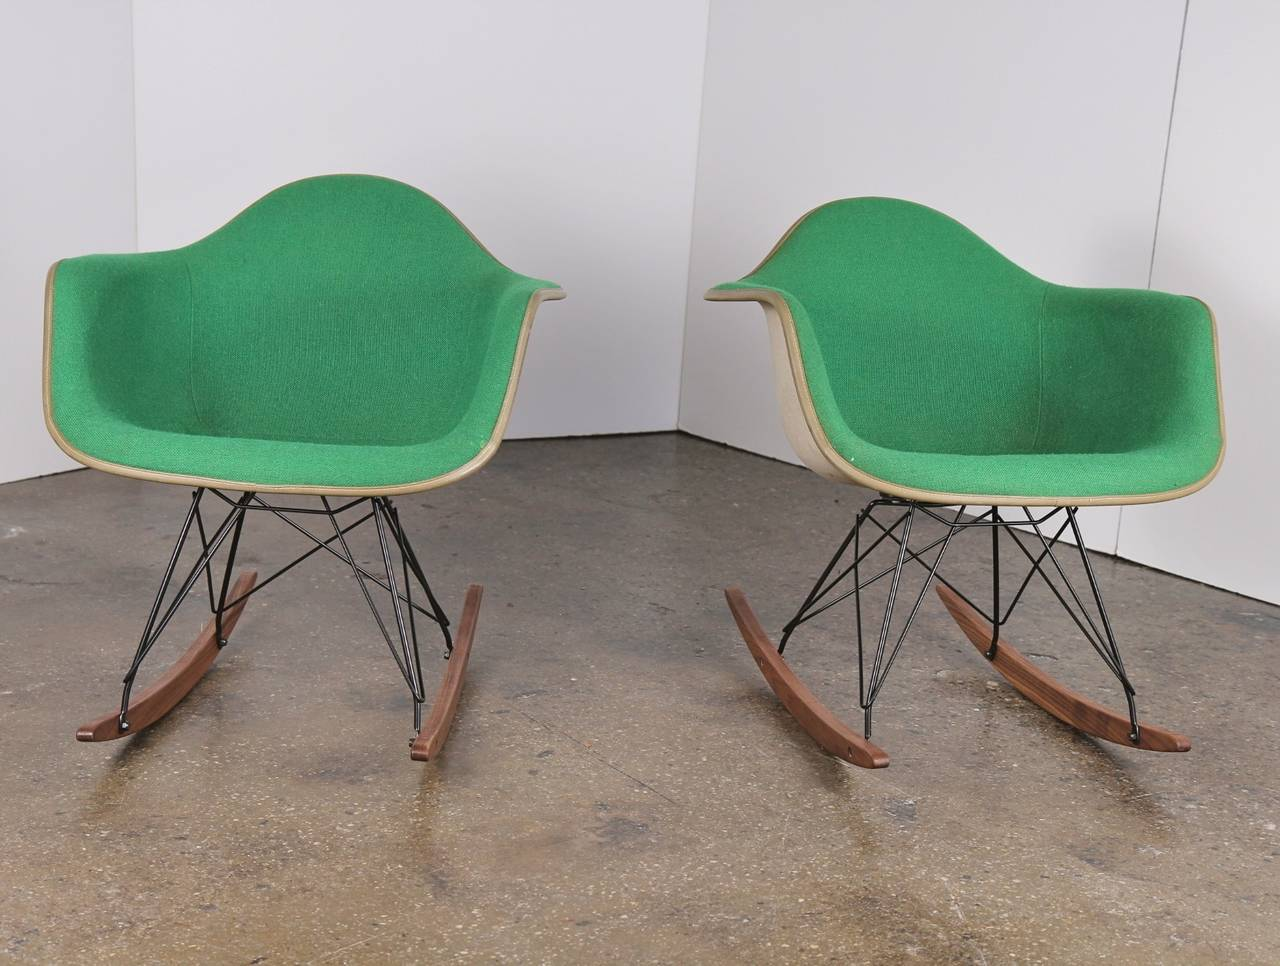 We Have Two Kelly Green Eames Shell Chairs Mounted On